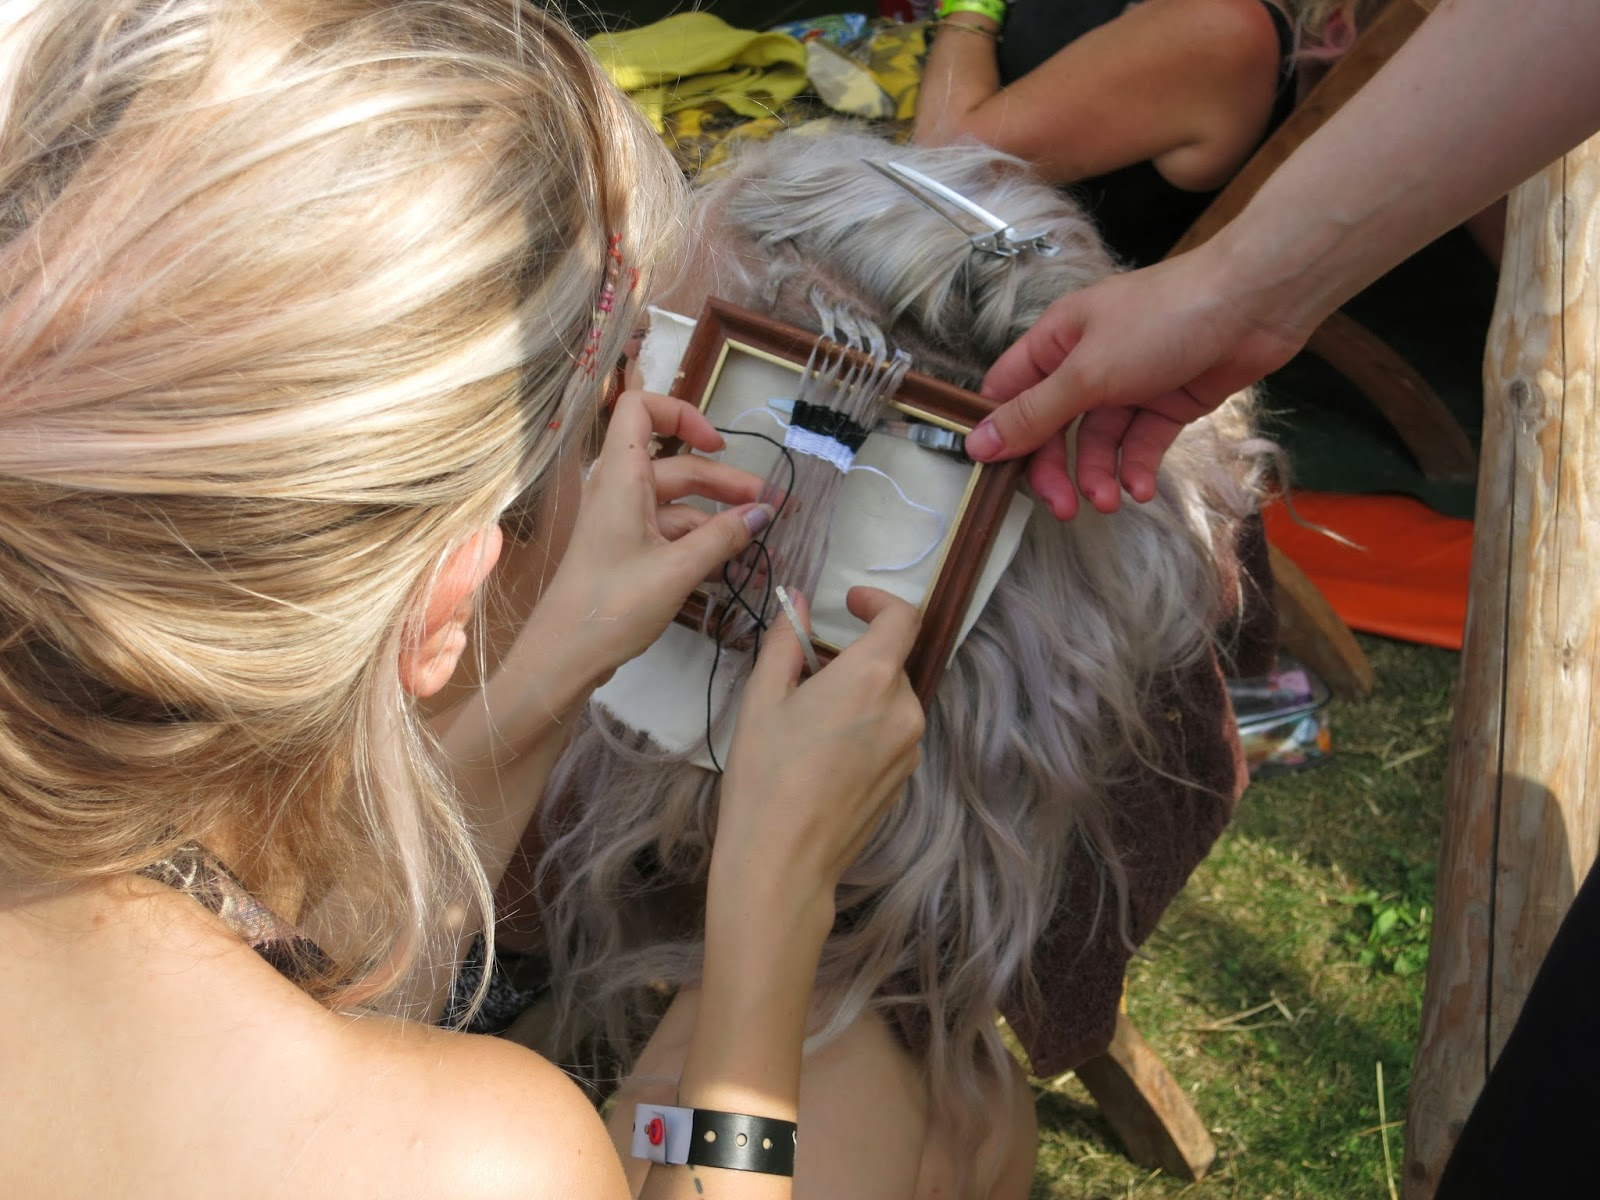 hair tapestry by bleach london at port eliot festival 2014